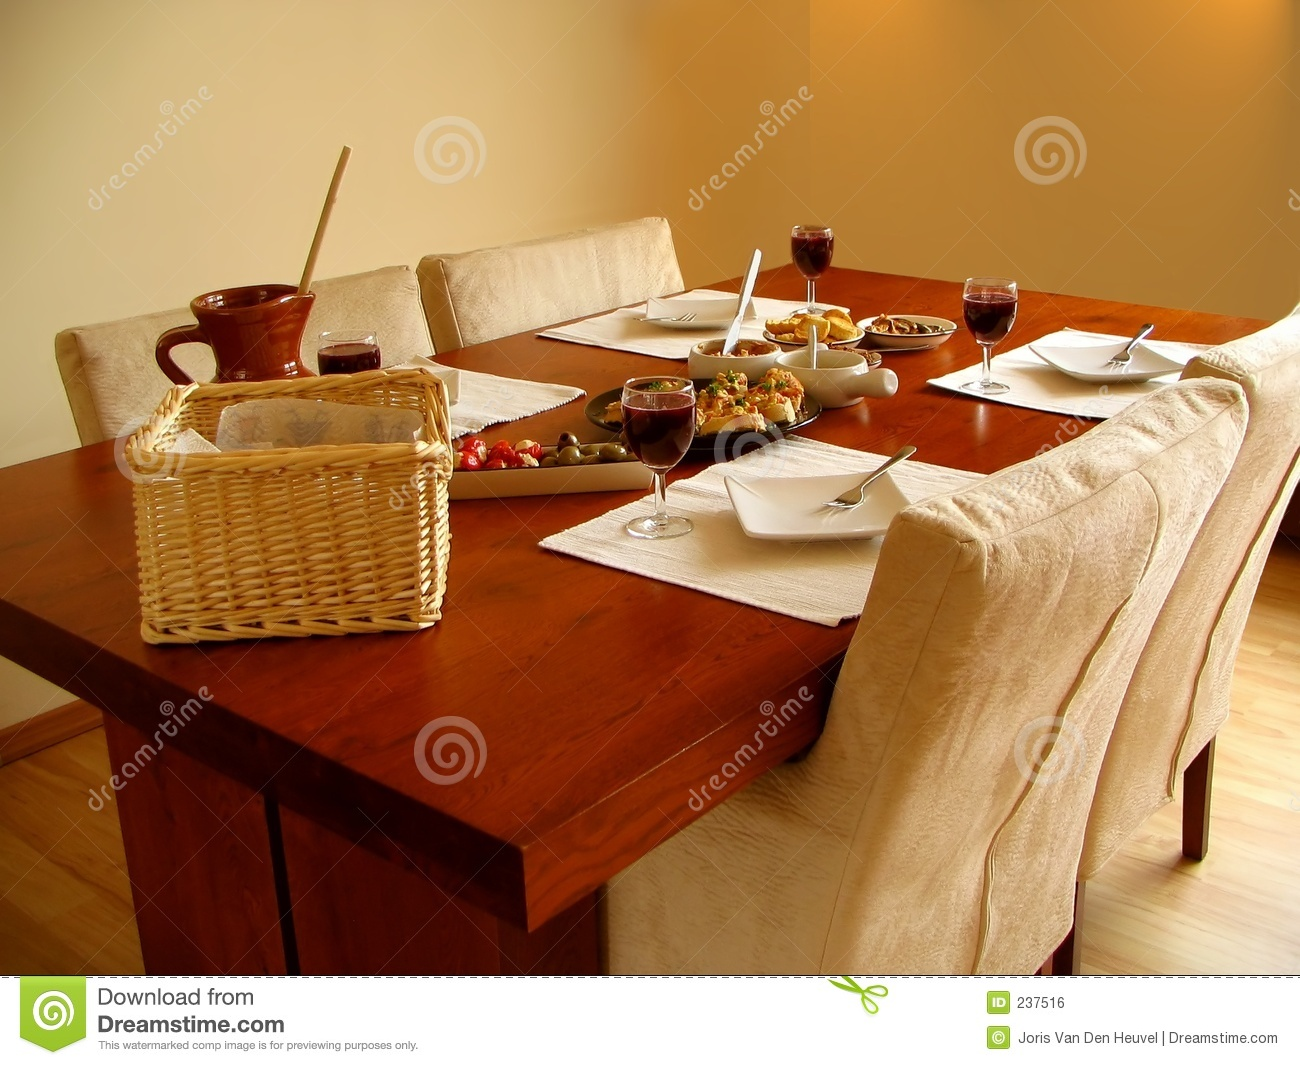 Set table with Spanish tapas served & Set Table With Spanish Tapas Served Stock Photo - Image of plate ...